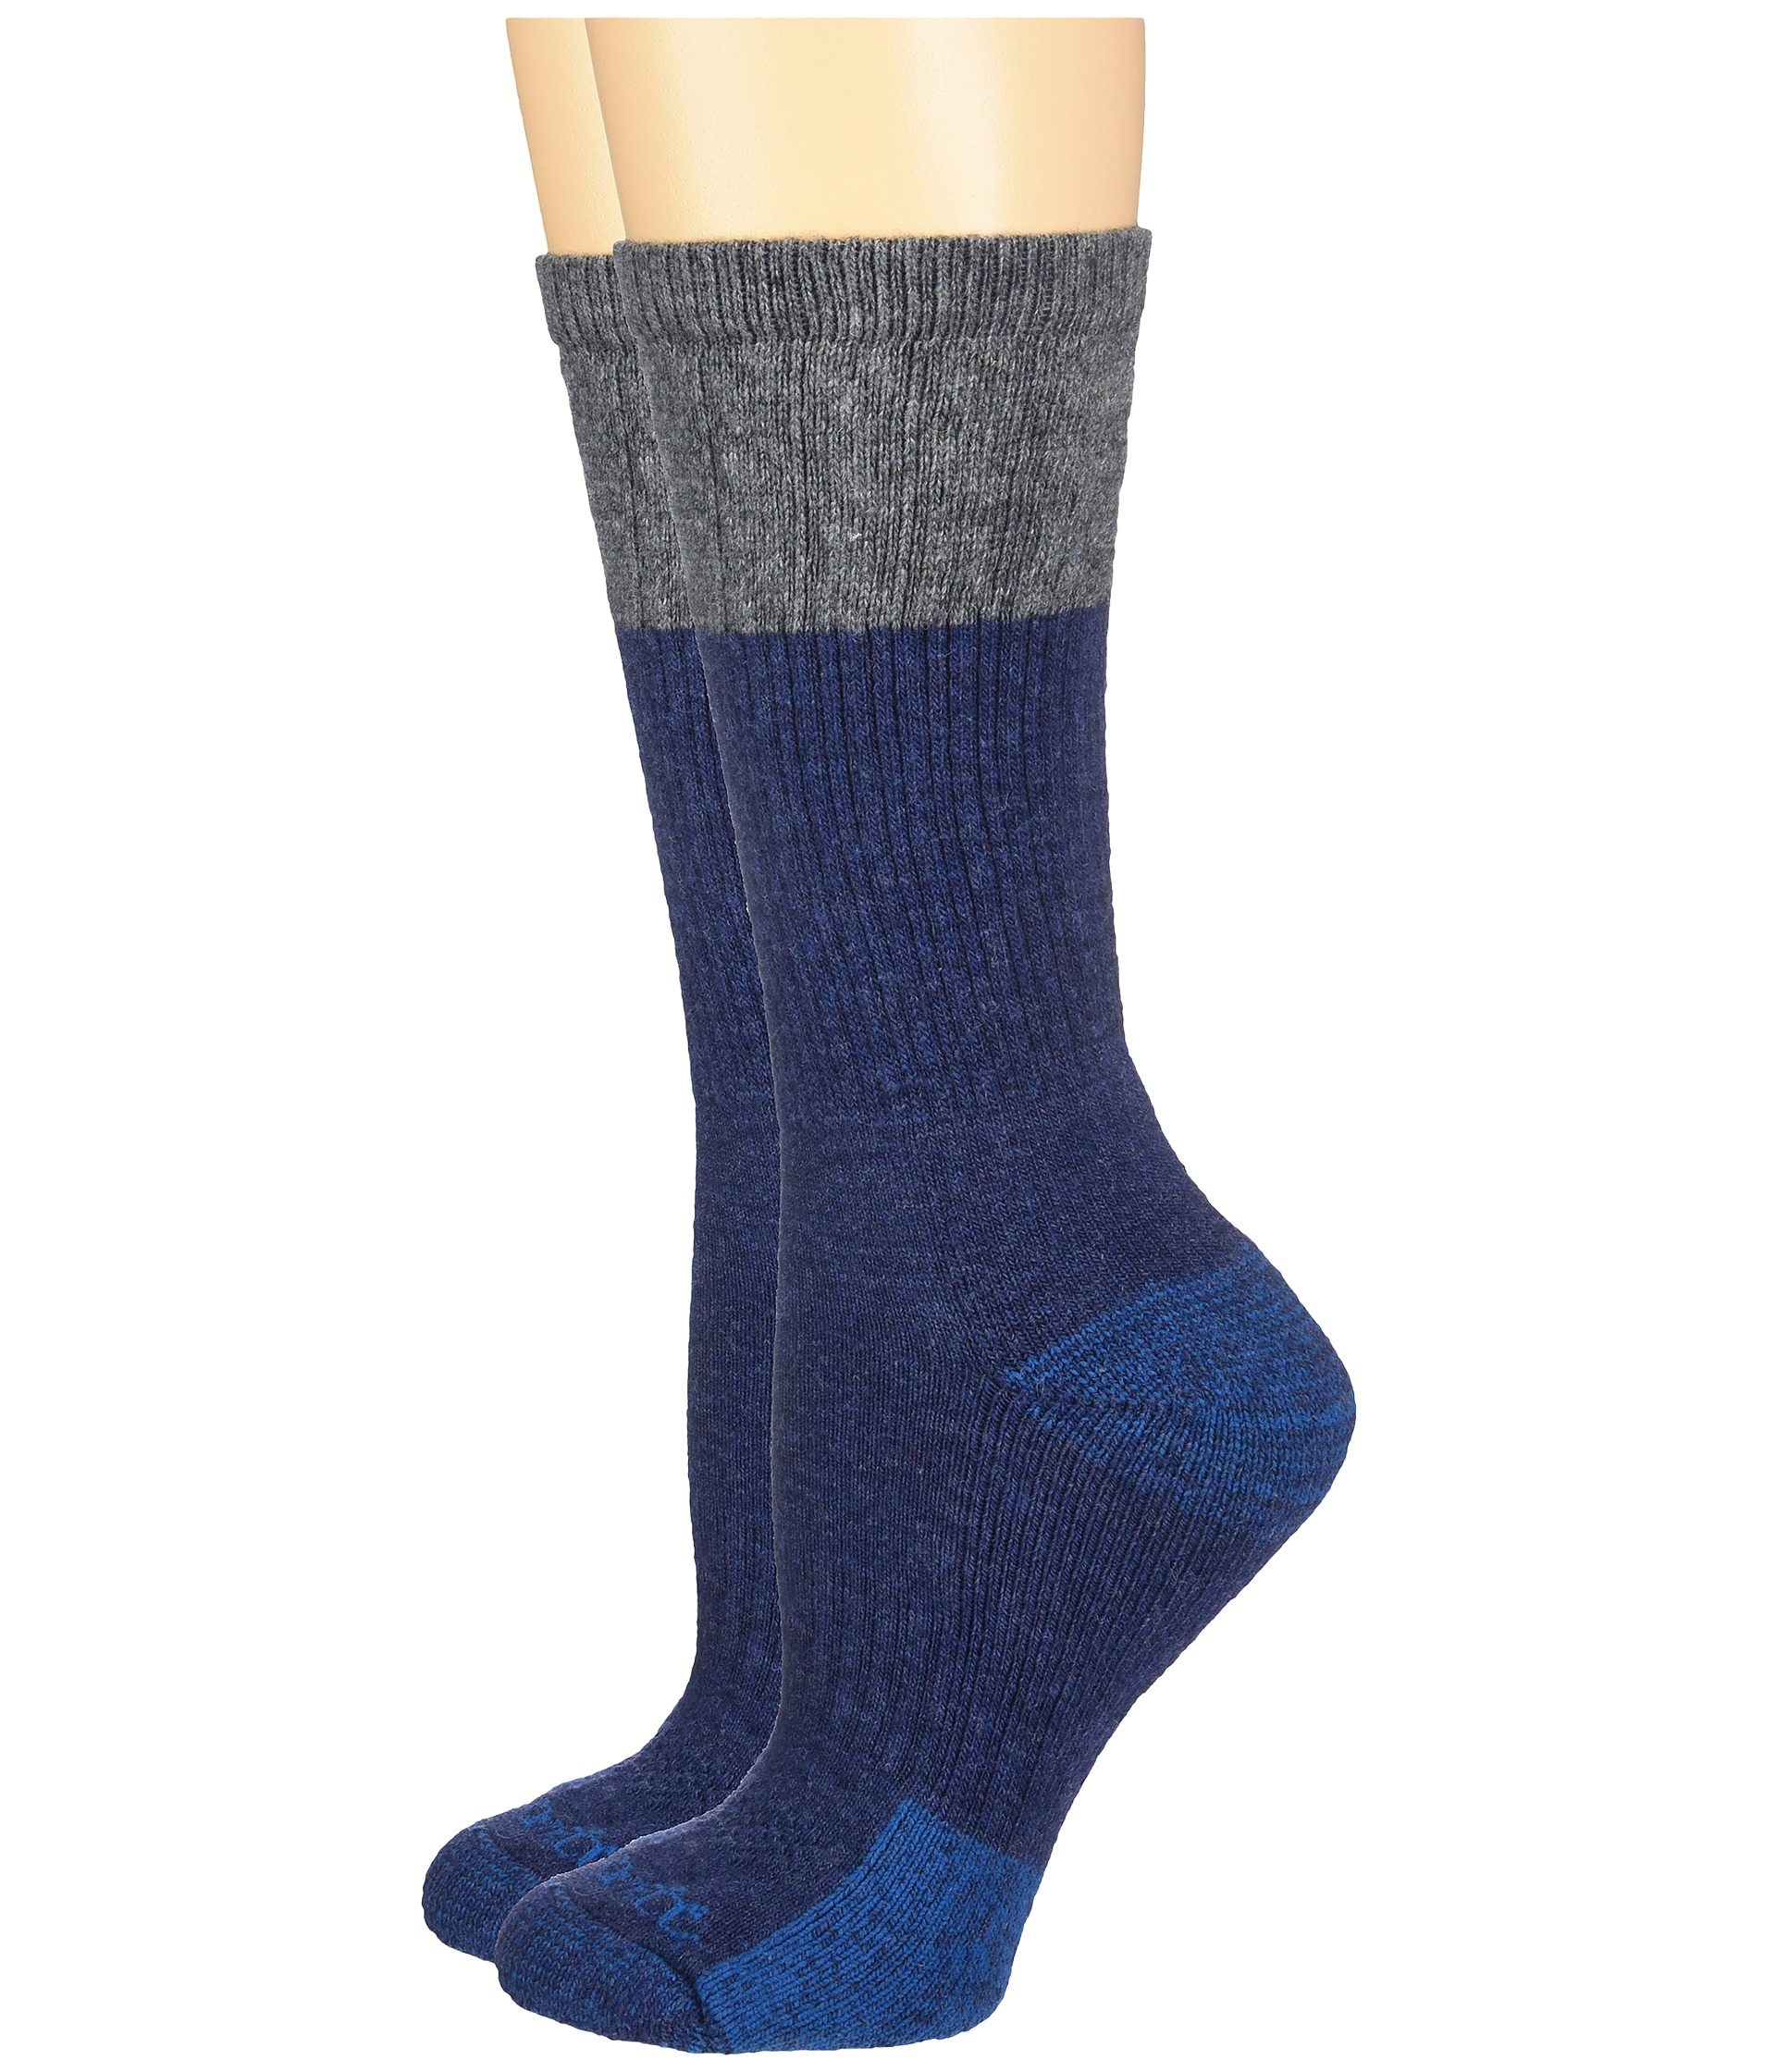 Men's Wool Blend Socks are a good option for you to keep your feet comfortable all day long. Pick out the color and clothing size from the listings to meet your .